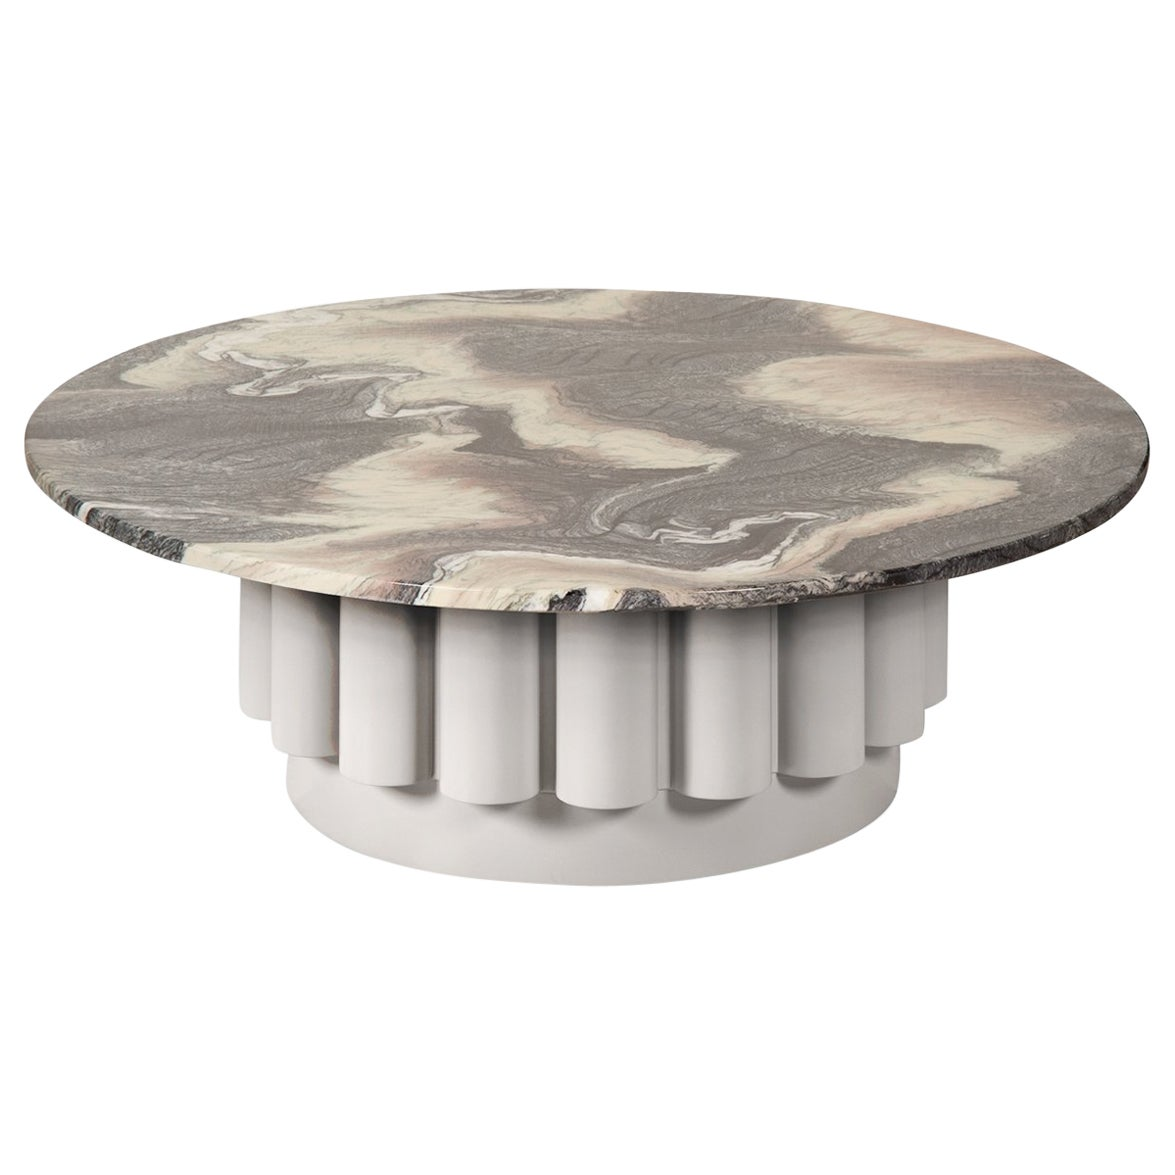 Round Ravine Marble-Top Coffee Table with Fluted Base